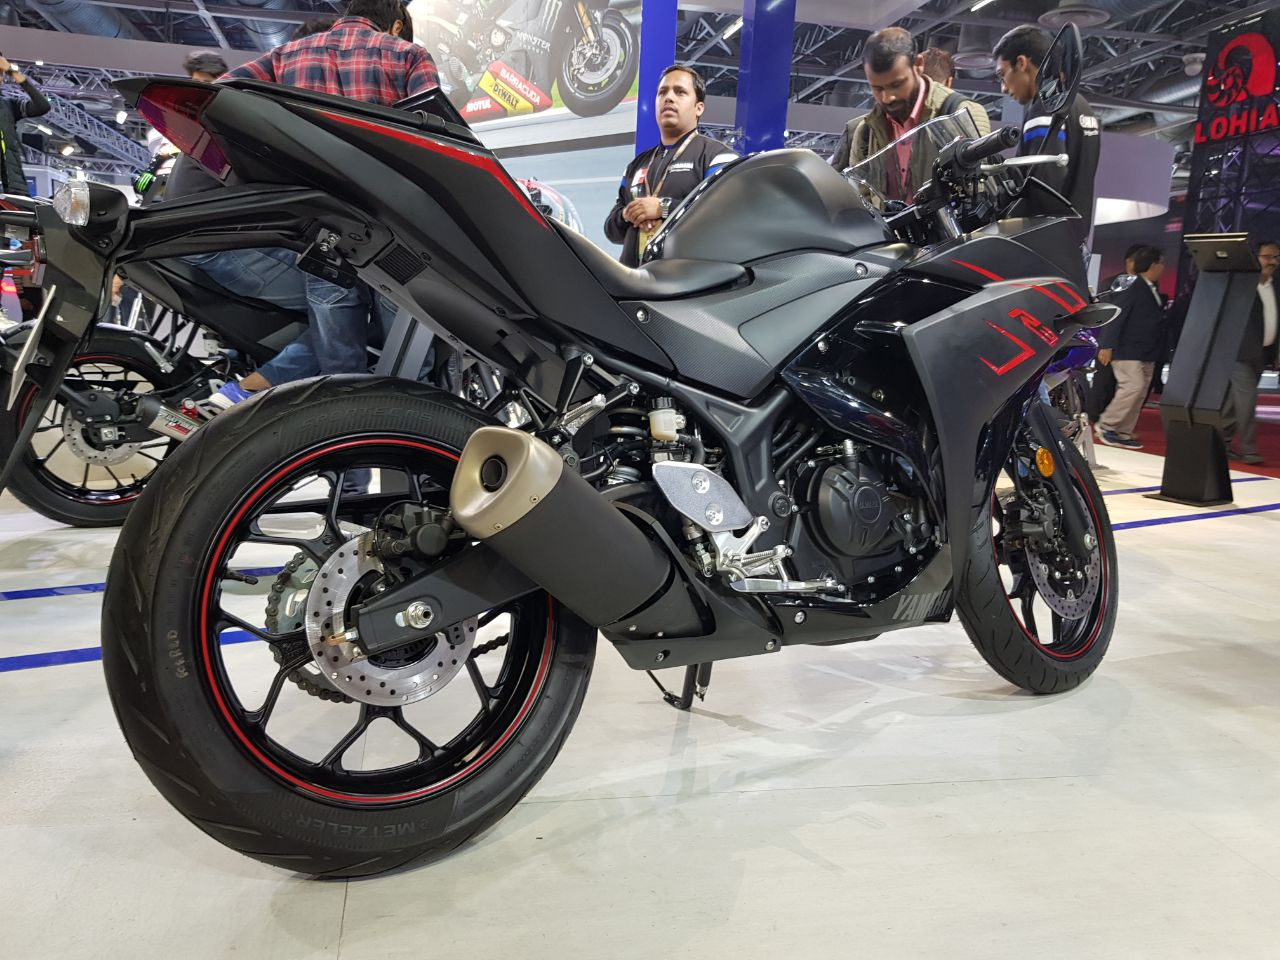 "<p>That&#39;s the<a href=""http://bit.ly/2nVPP1h""> Yamaha YZF-R3</a> in Magma Black!</p>"